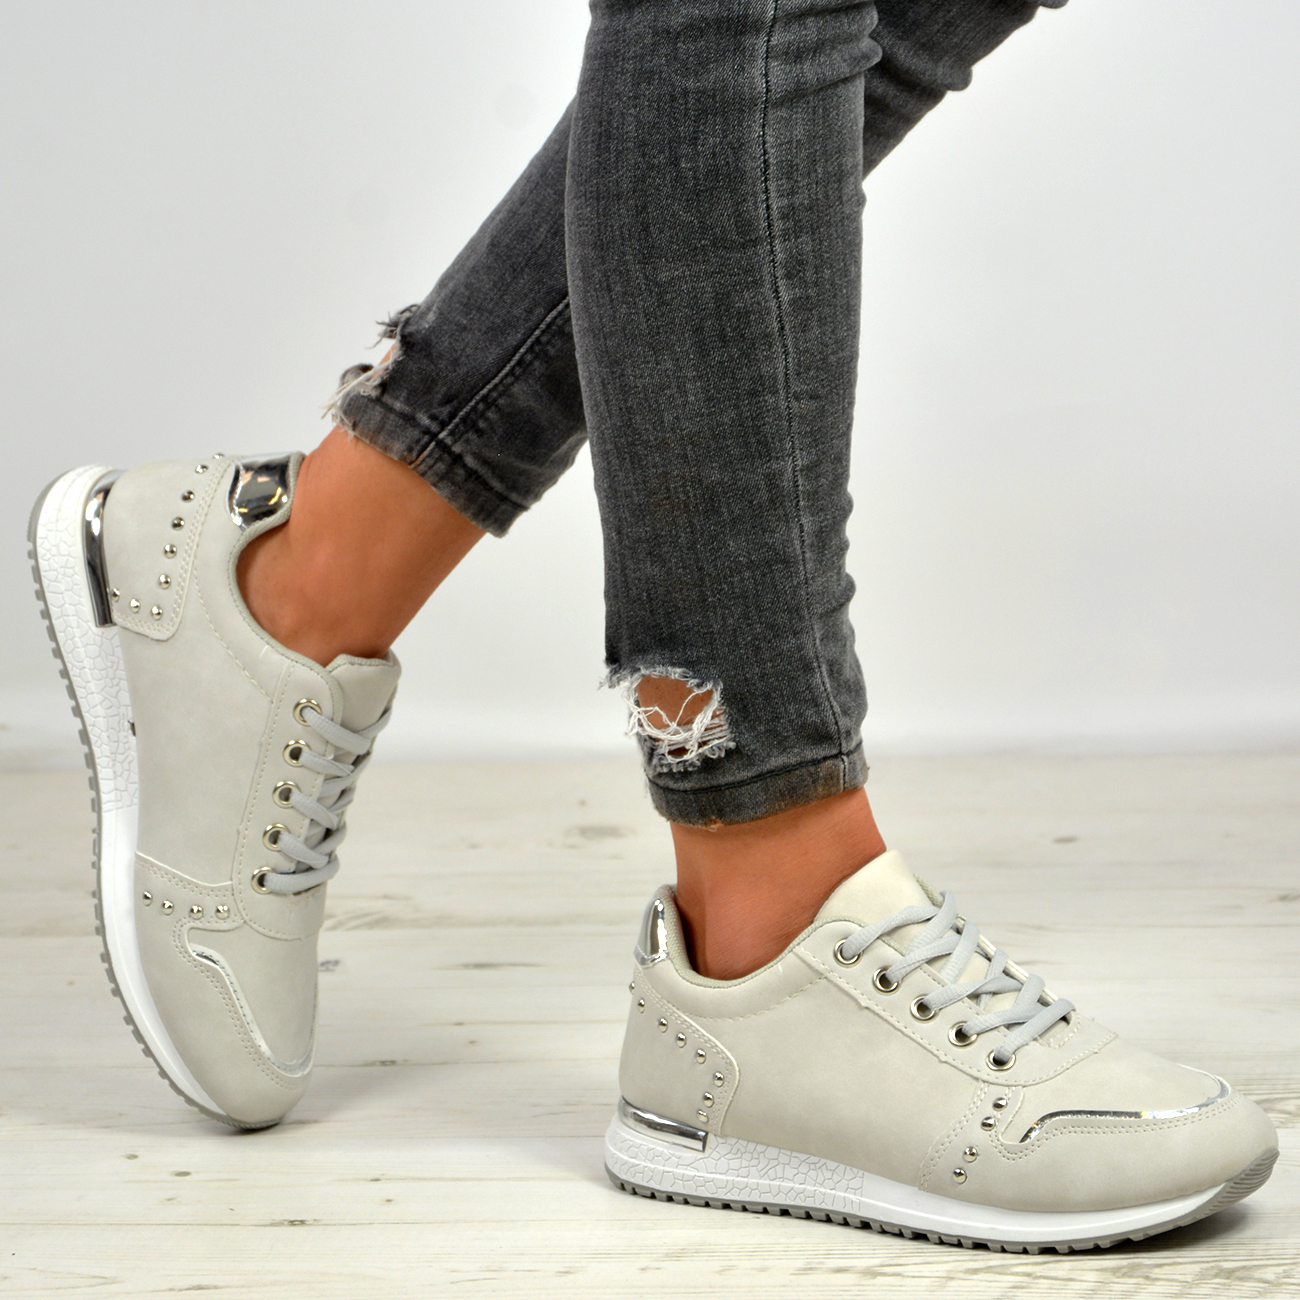 New Womens Studded Lace Up Running Trainers Sneakers Shoes Size Uk 3-8